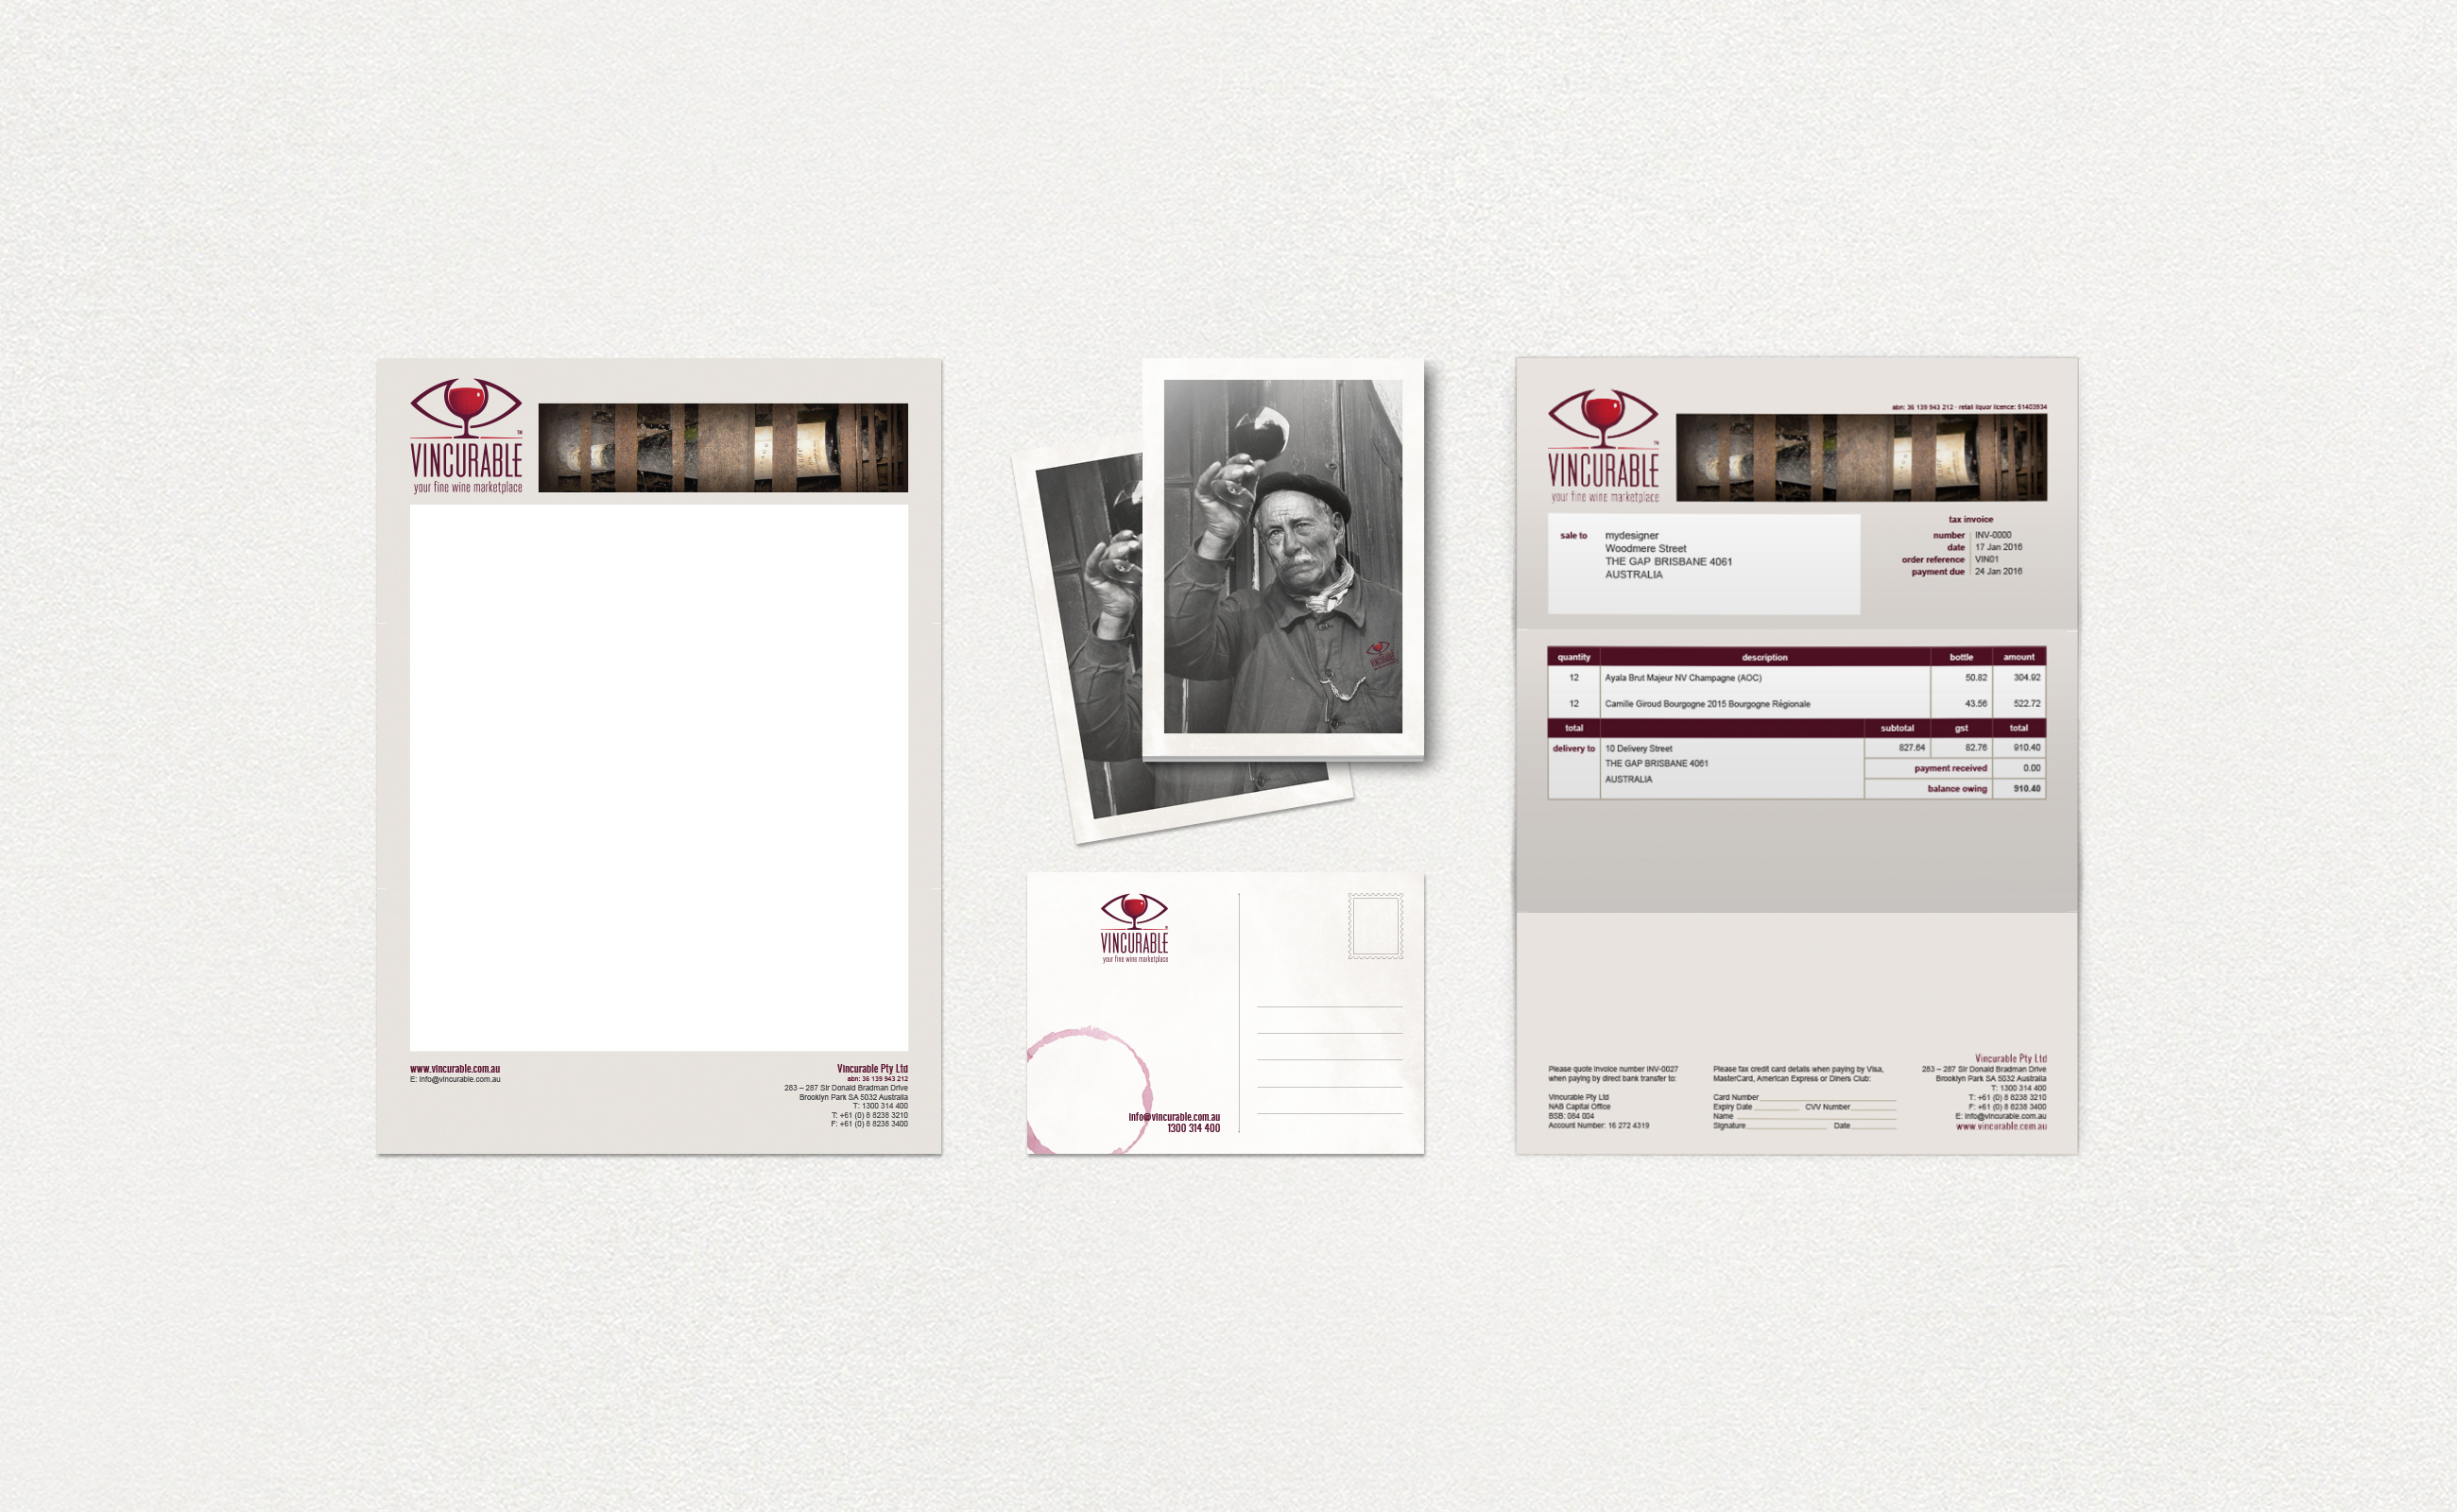 Vincurable stationery letterhead, postcards and invoice